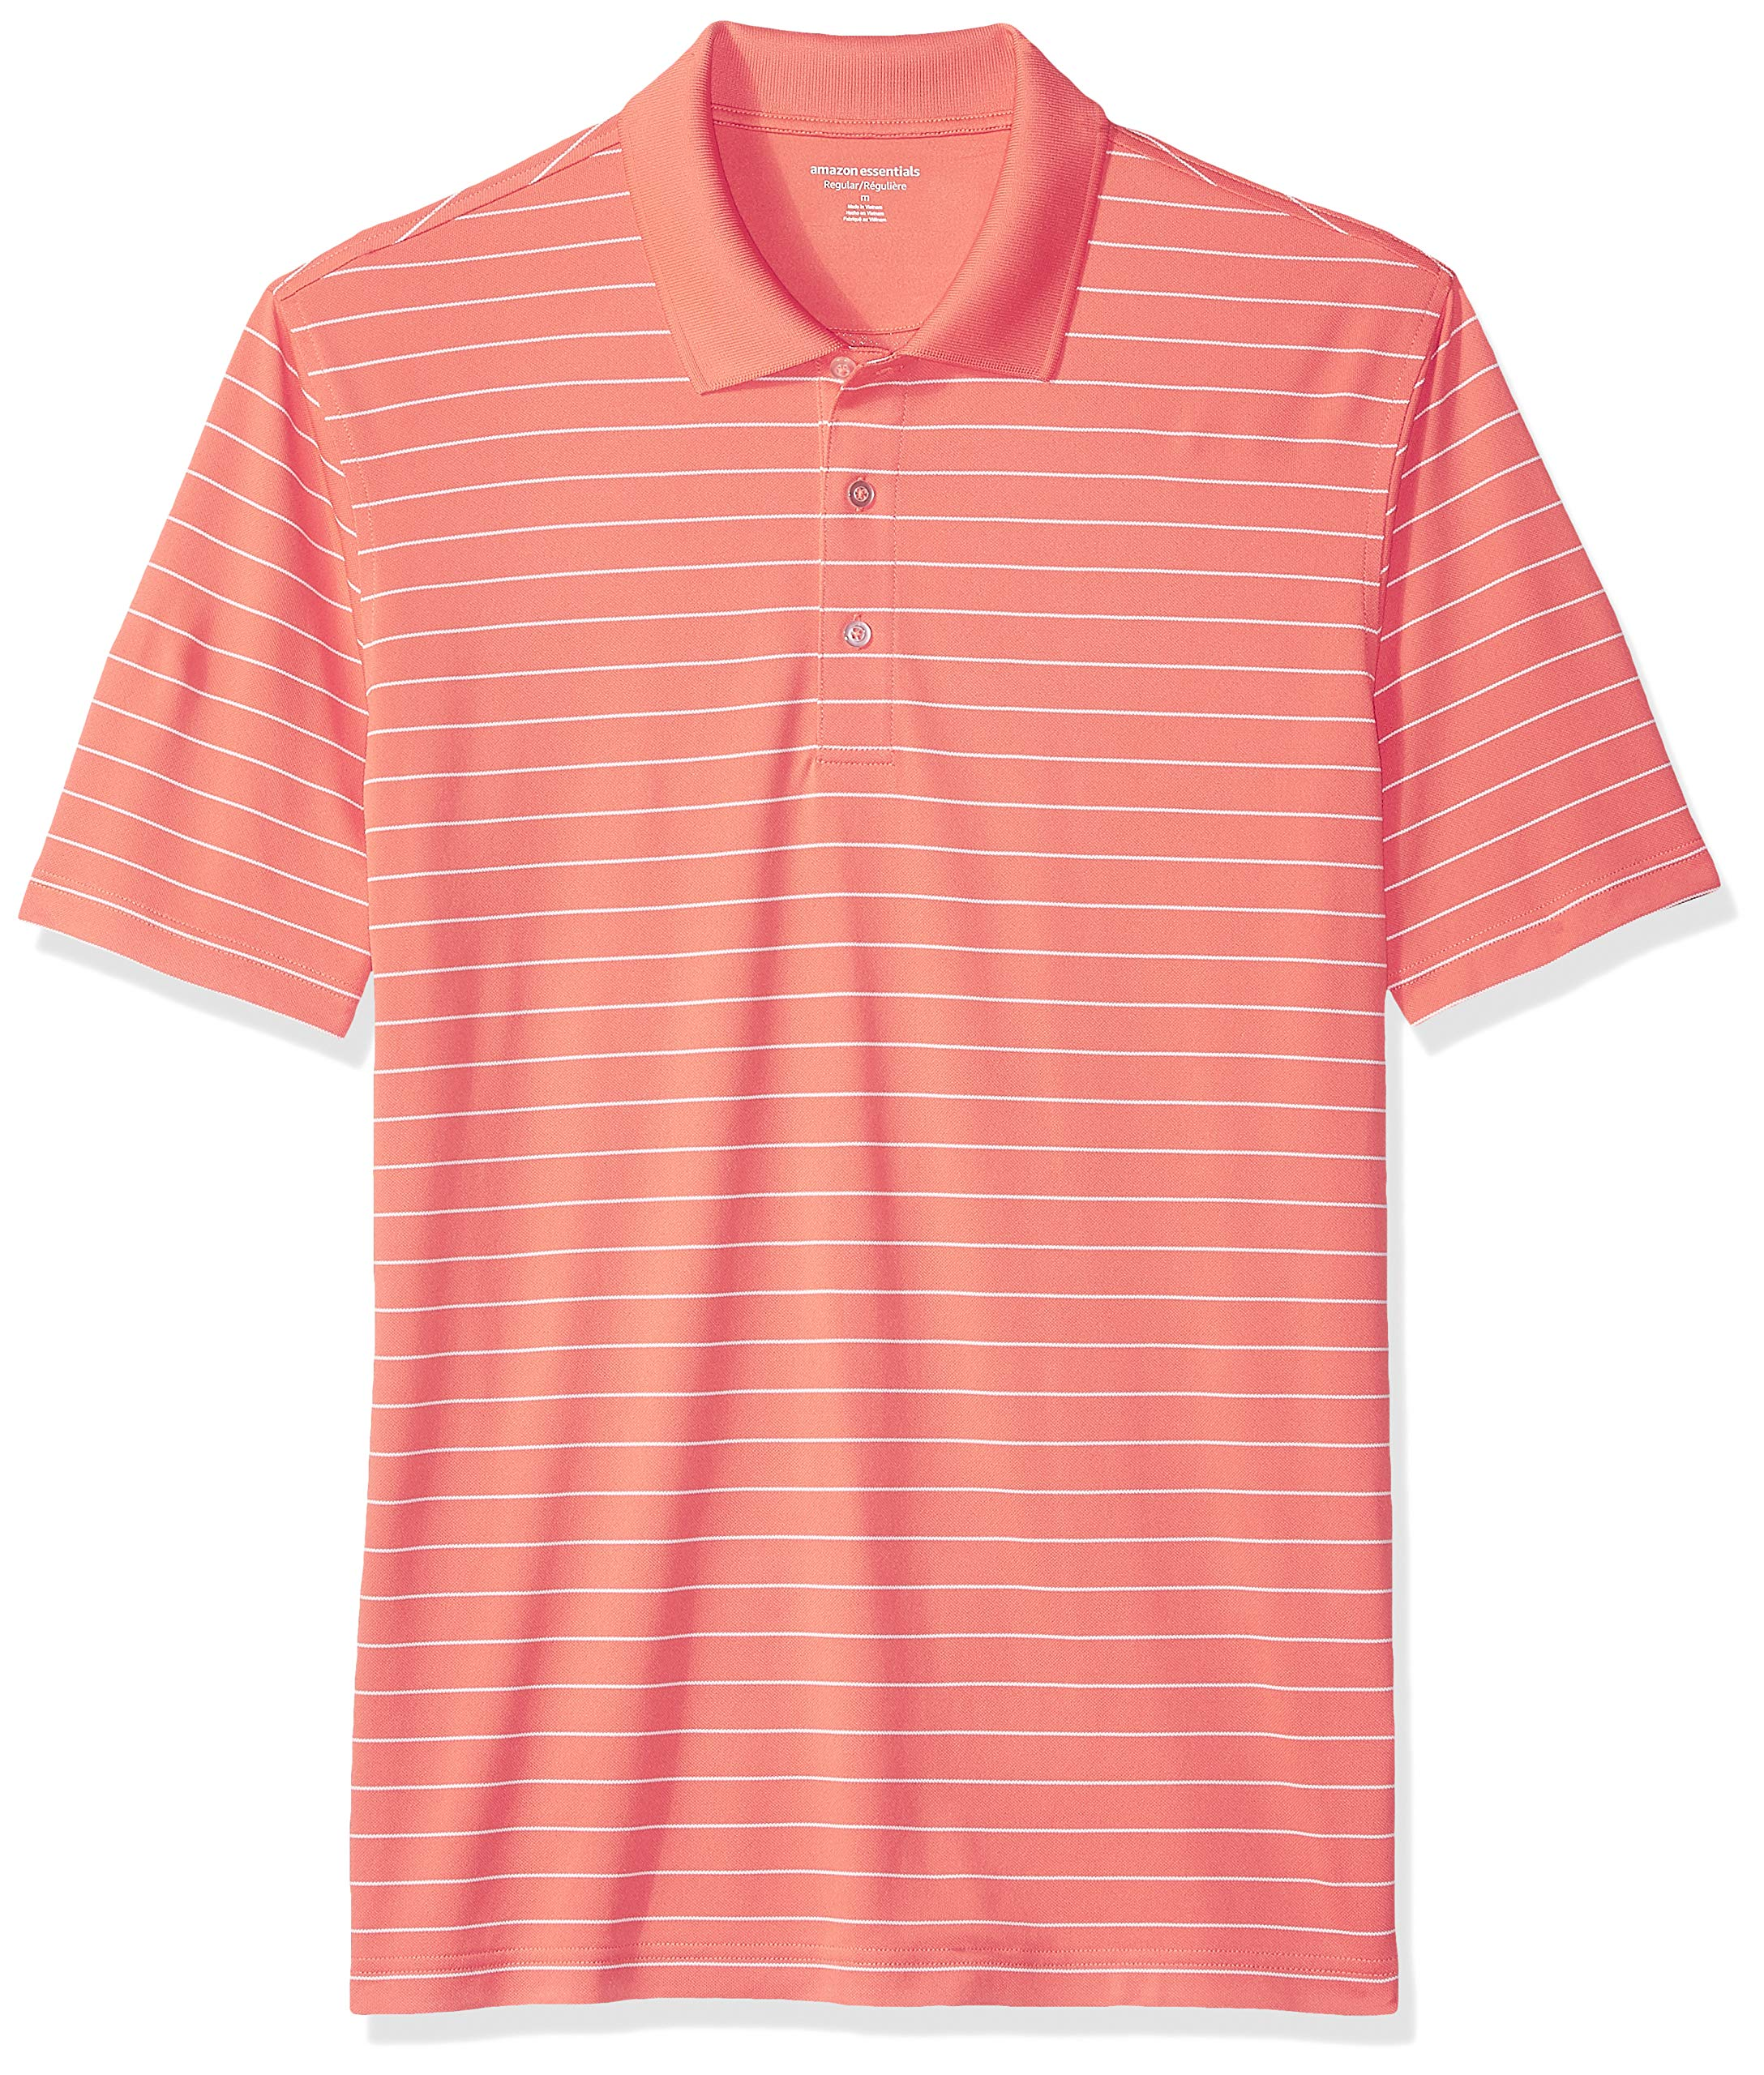 Amazon Essentials Men's Regular-Fit Quick-Dry Golf Polo Shirt, Coral Stripe, X-Small